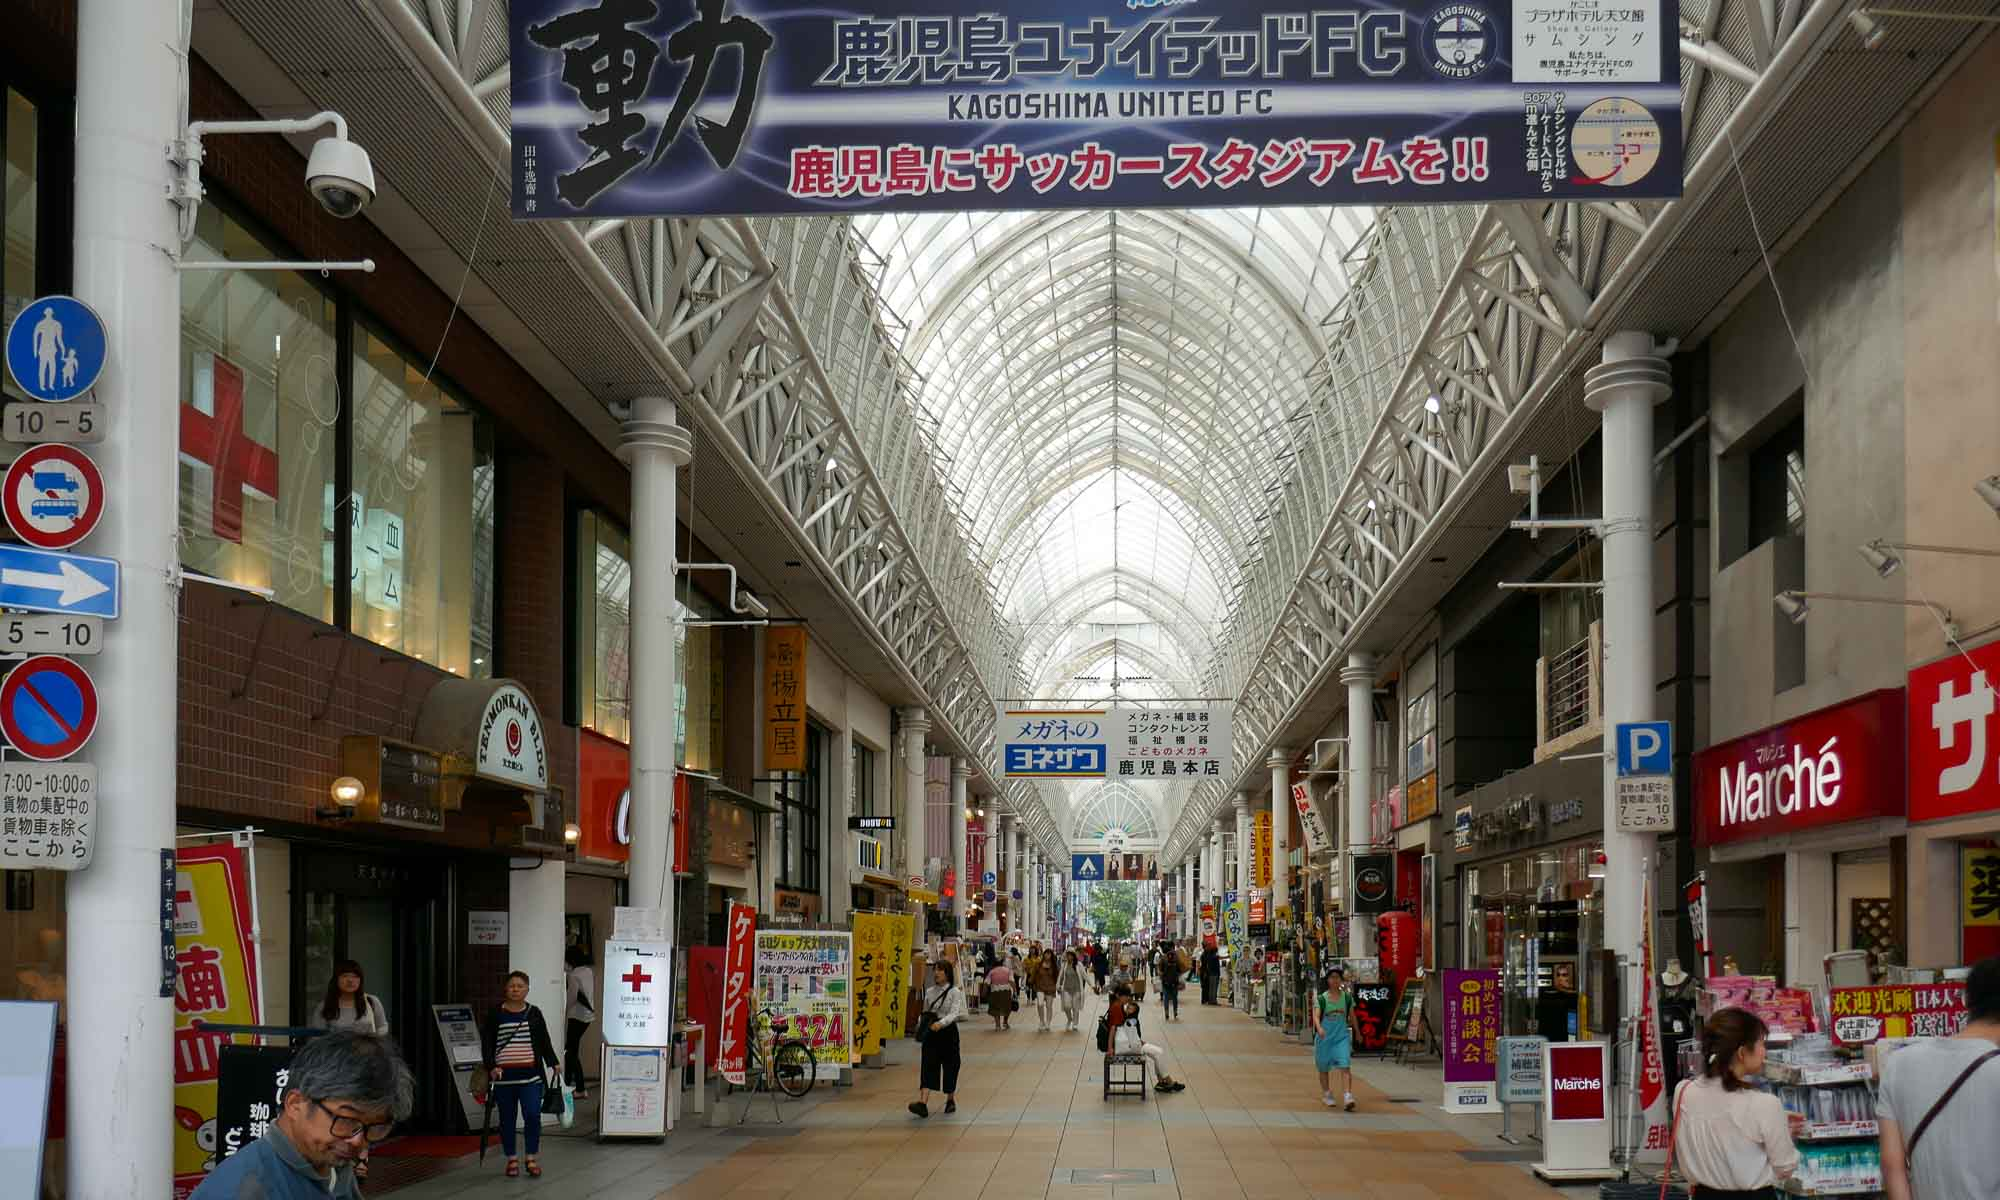 Tenmonkan shopping arcade has a roof to protect from sun and volcanic ash